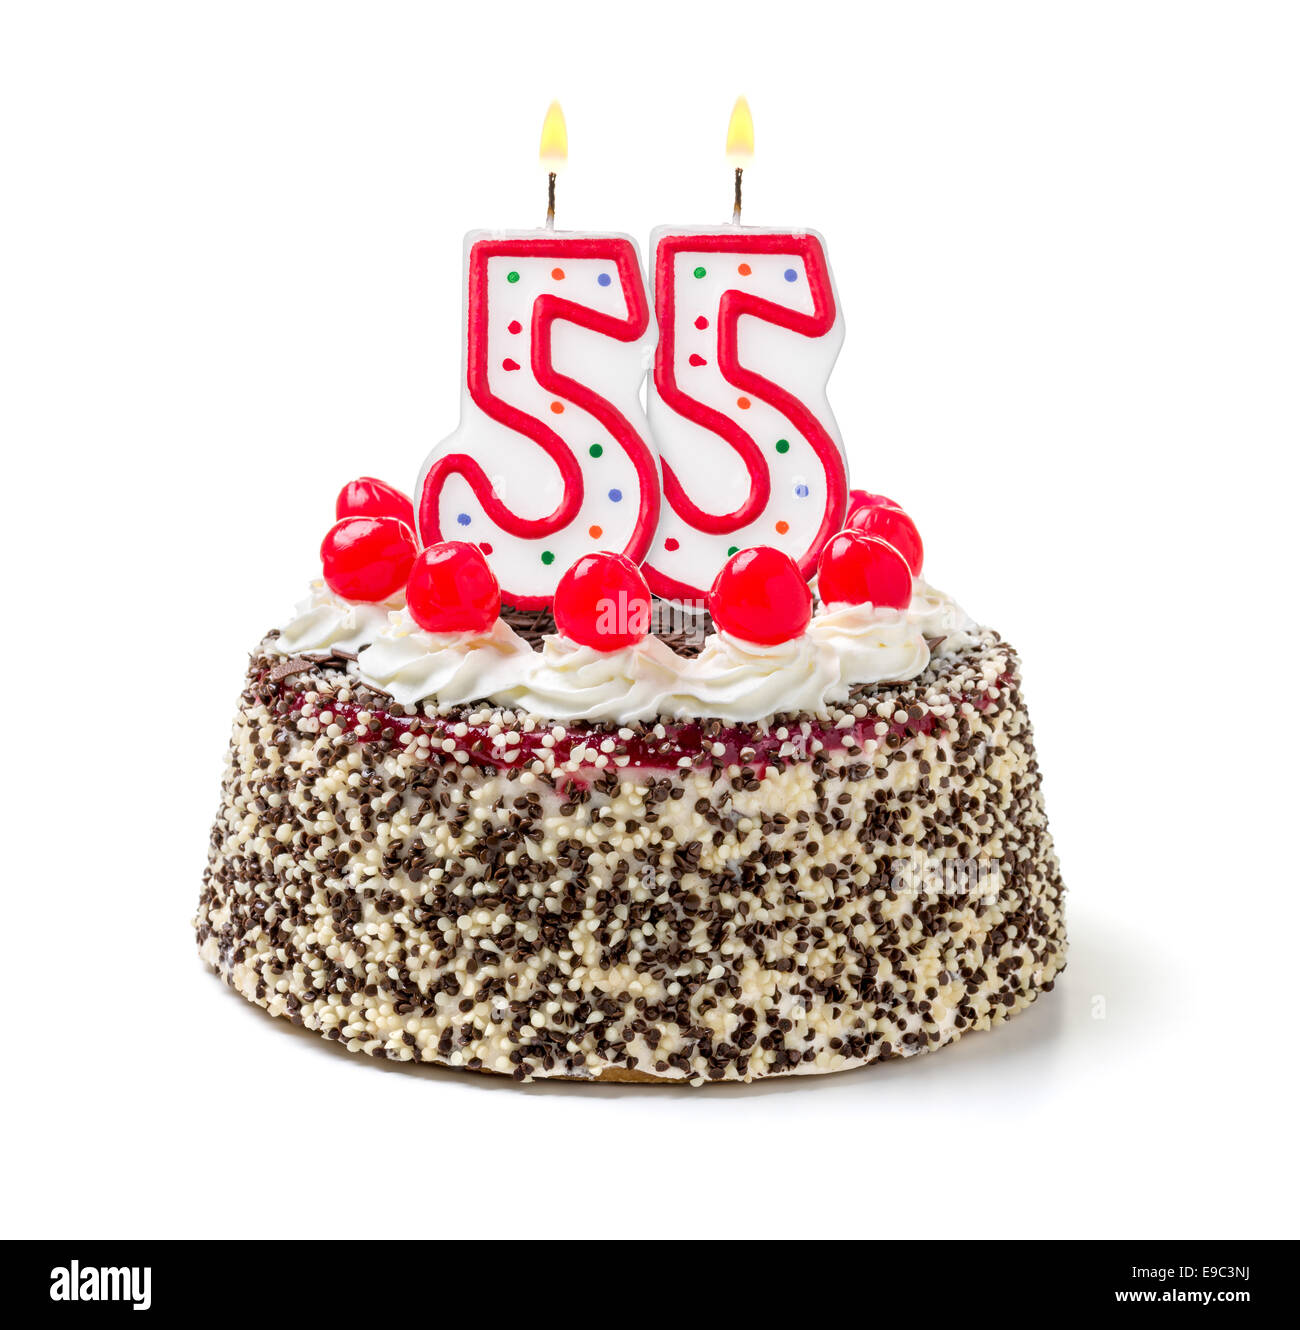 Remarkable Birthday Cake With Burning Candle Number 55 Stock Photo 74639758 Funny Birthday Cards Online Inifofree Goldxyz